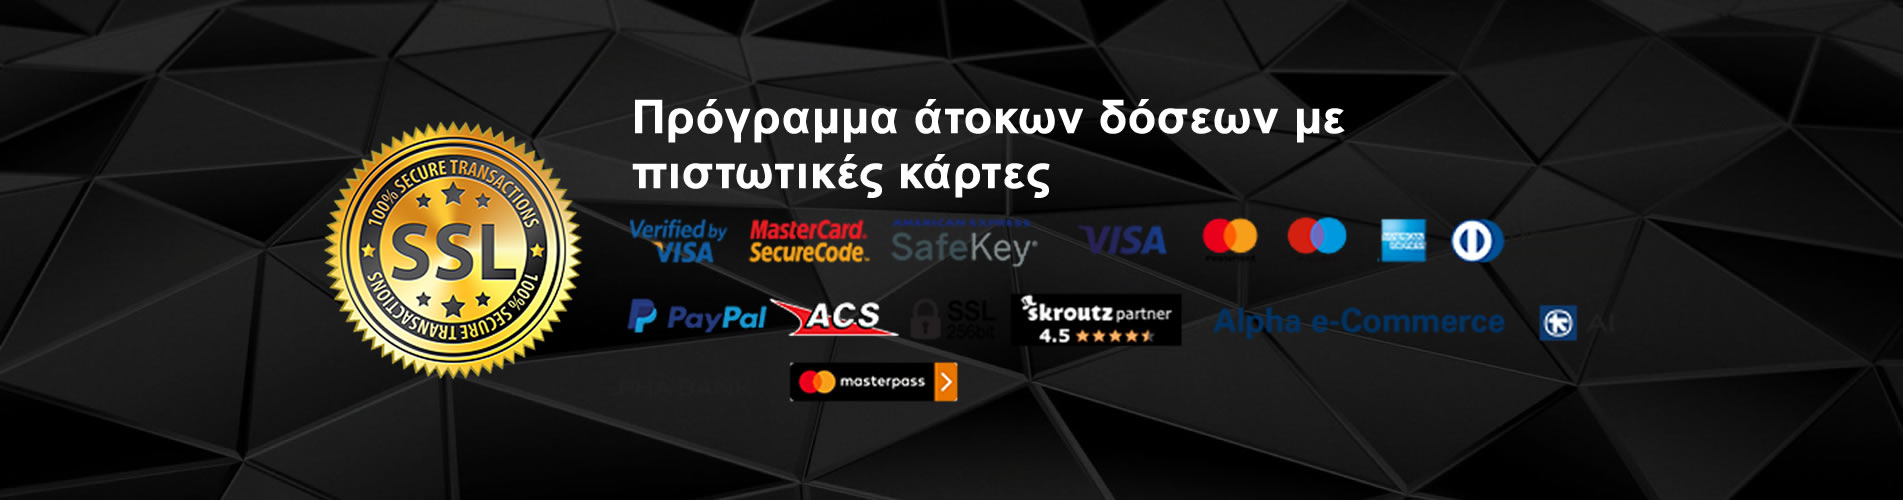 Stereotiki Banner 10 - Credit Cards installments Info